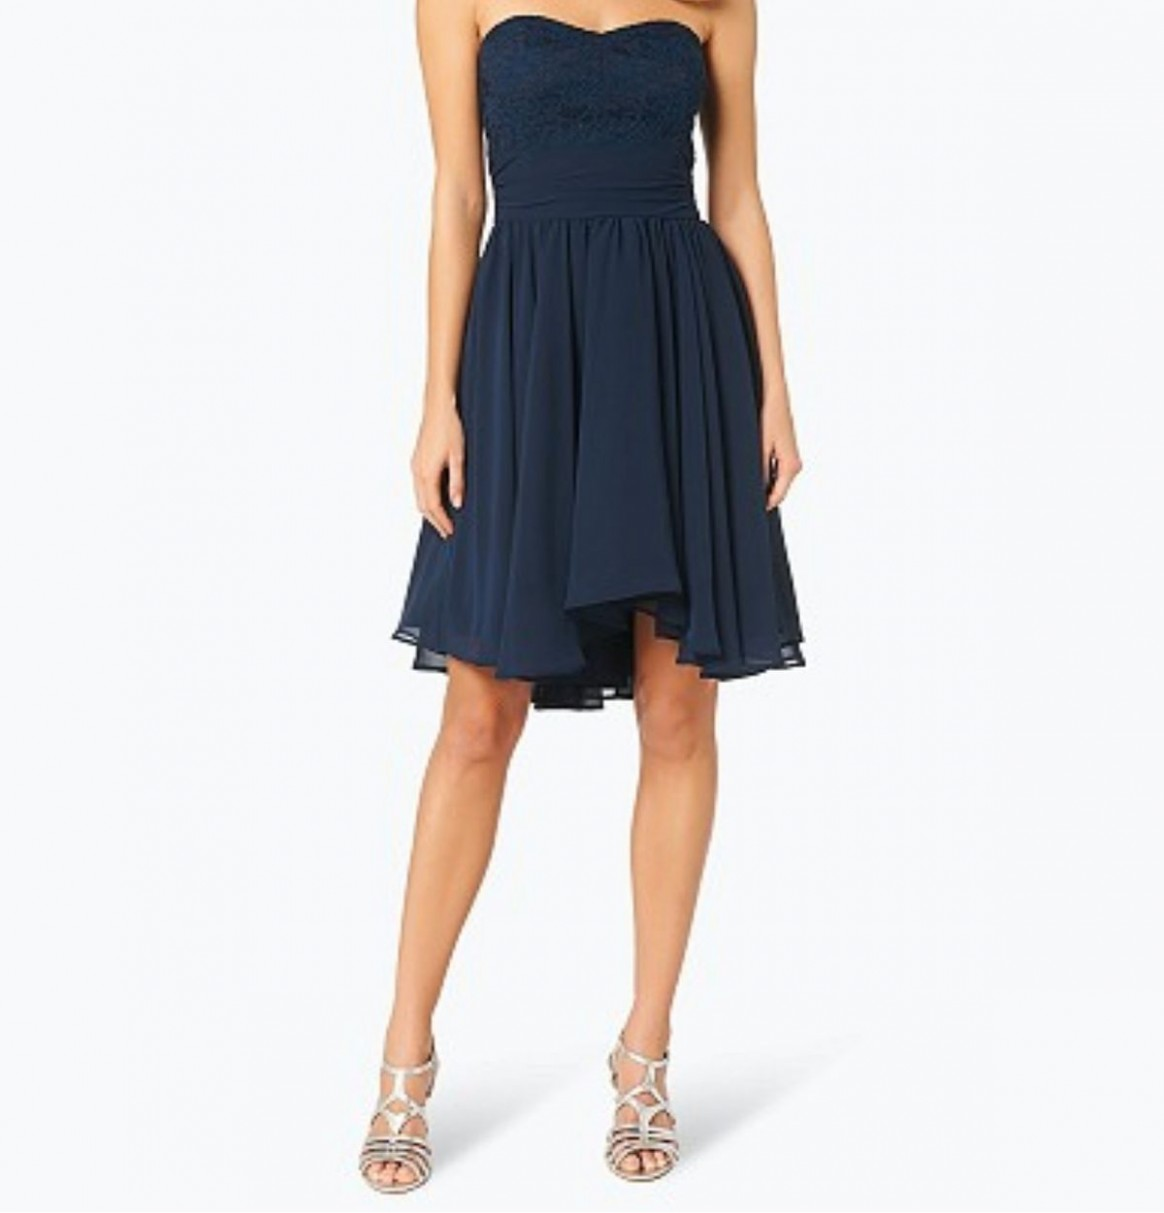 SWING Cocktailkleid blau 12/12 in 12 Bergkirchen for €12.12 for